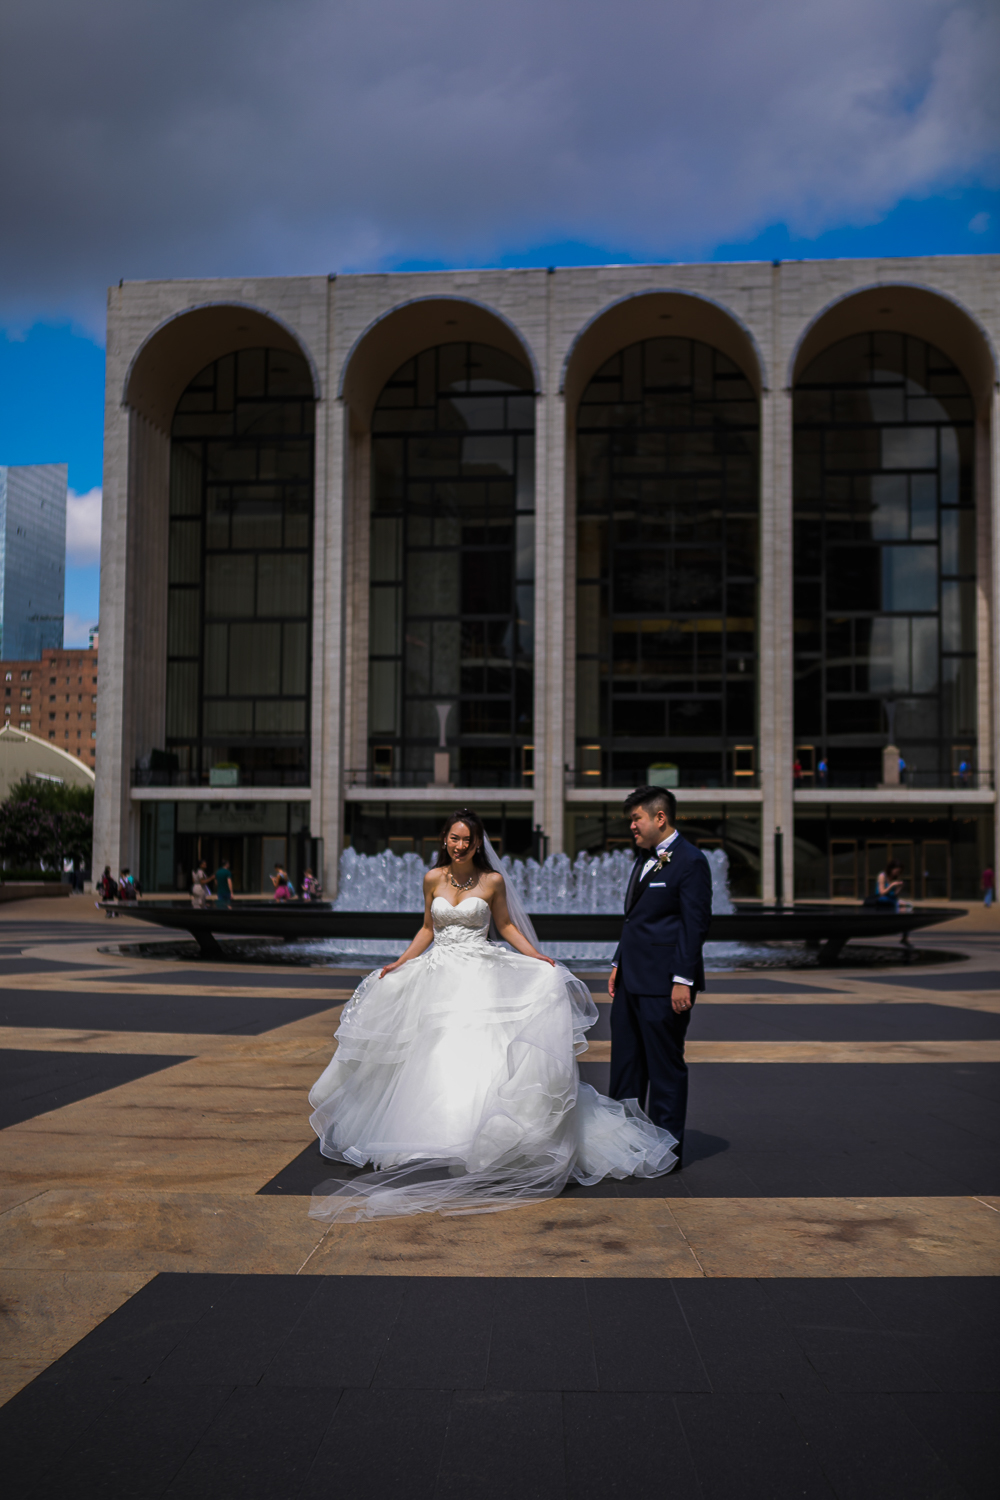 Portrait of a couple posing for wedding portraits at Lincoln Center in New York City | Lincoln Center Wedding Photos | Jason and Susanna's Glam NYC Elopement